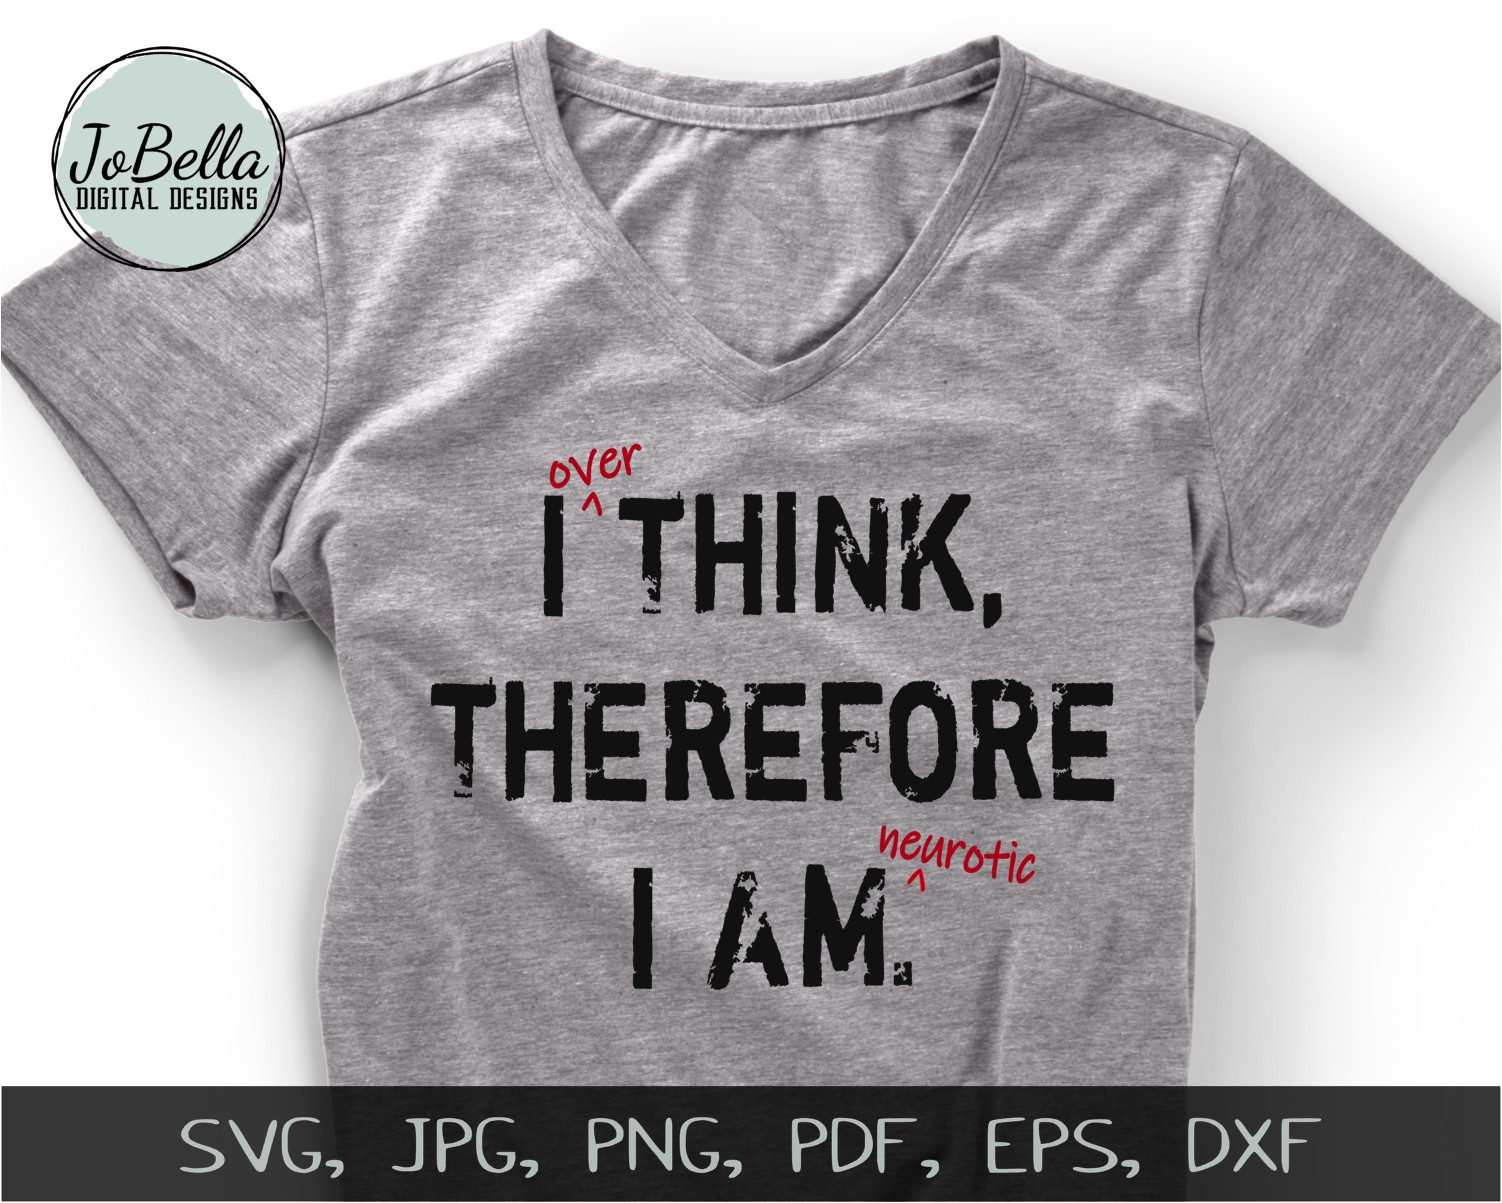 Funny Sarcastic SVG Bundle #2, Sublimation PNGs & Printables example image 6